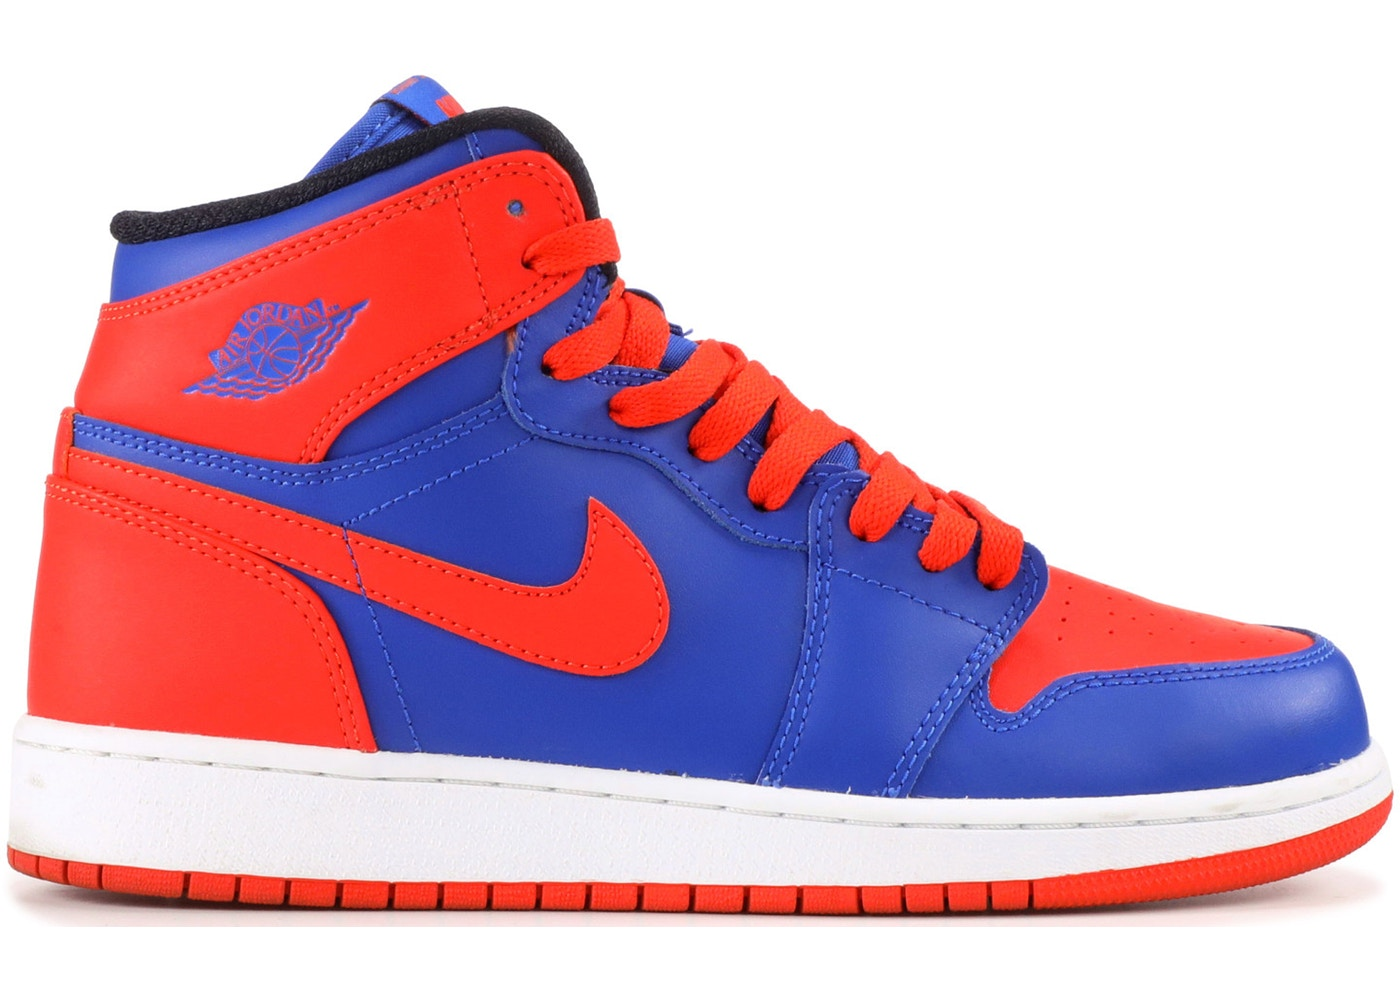 newest collection 4e3b0 ef635 Sell. or Ask. Size  5Y. View All Bids. Jordan 1 Retro High Knicks ...